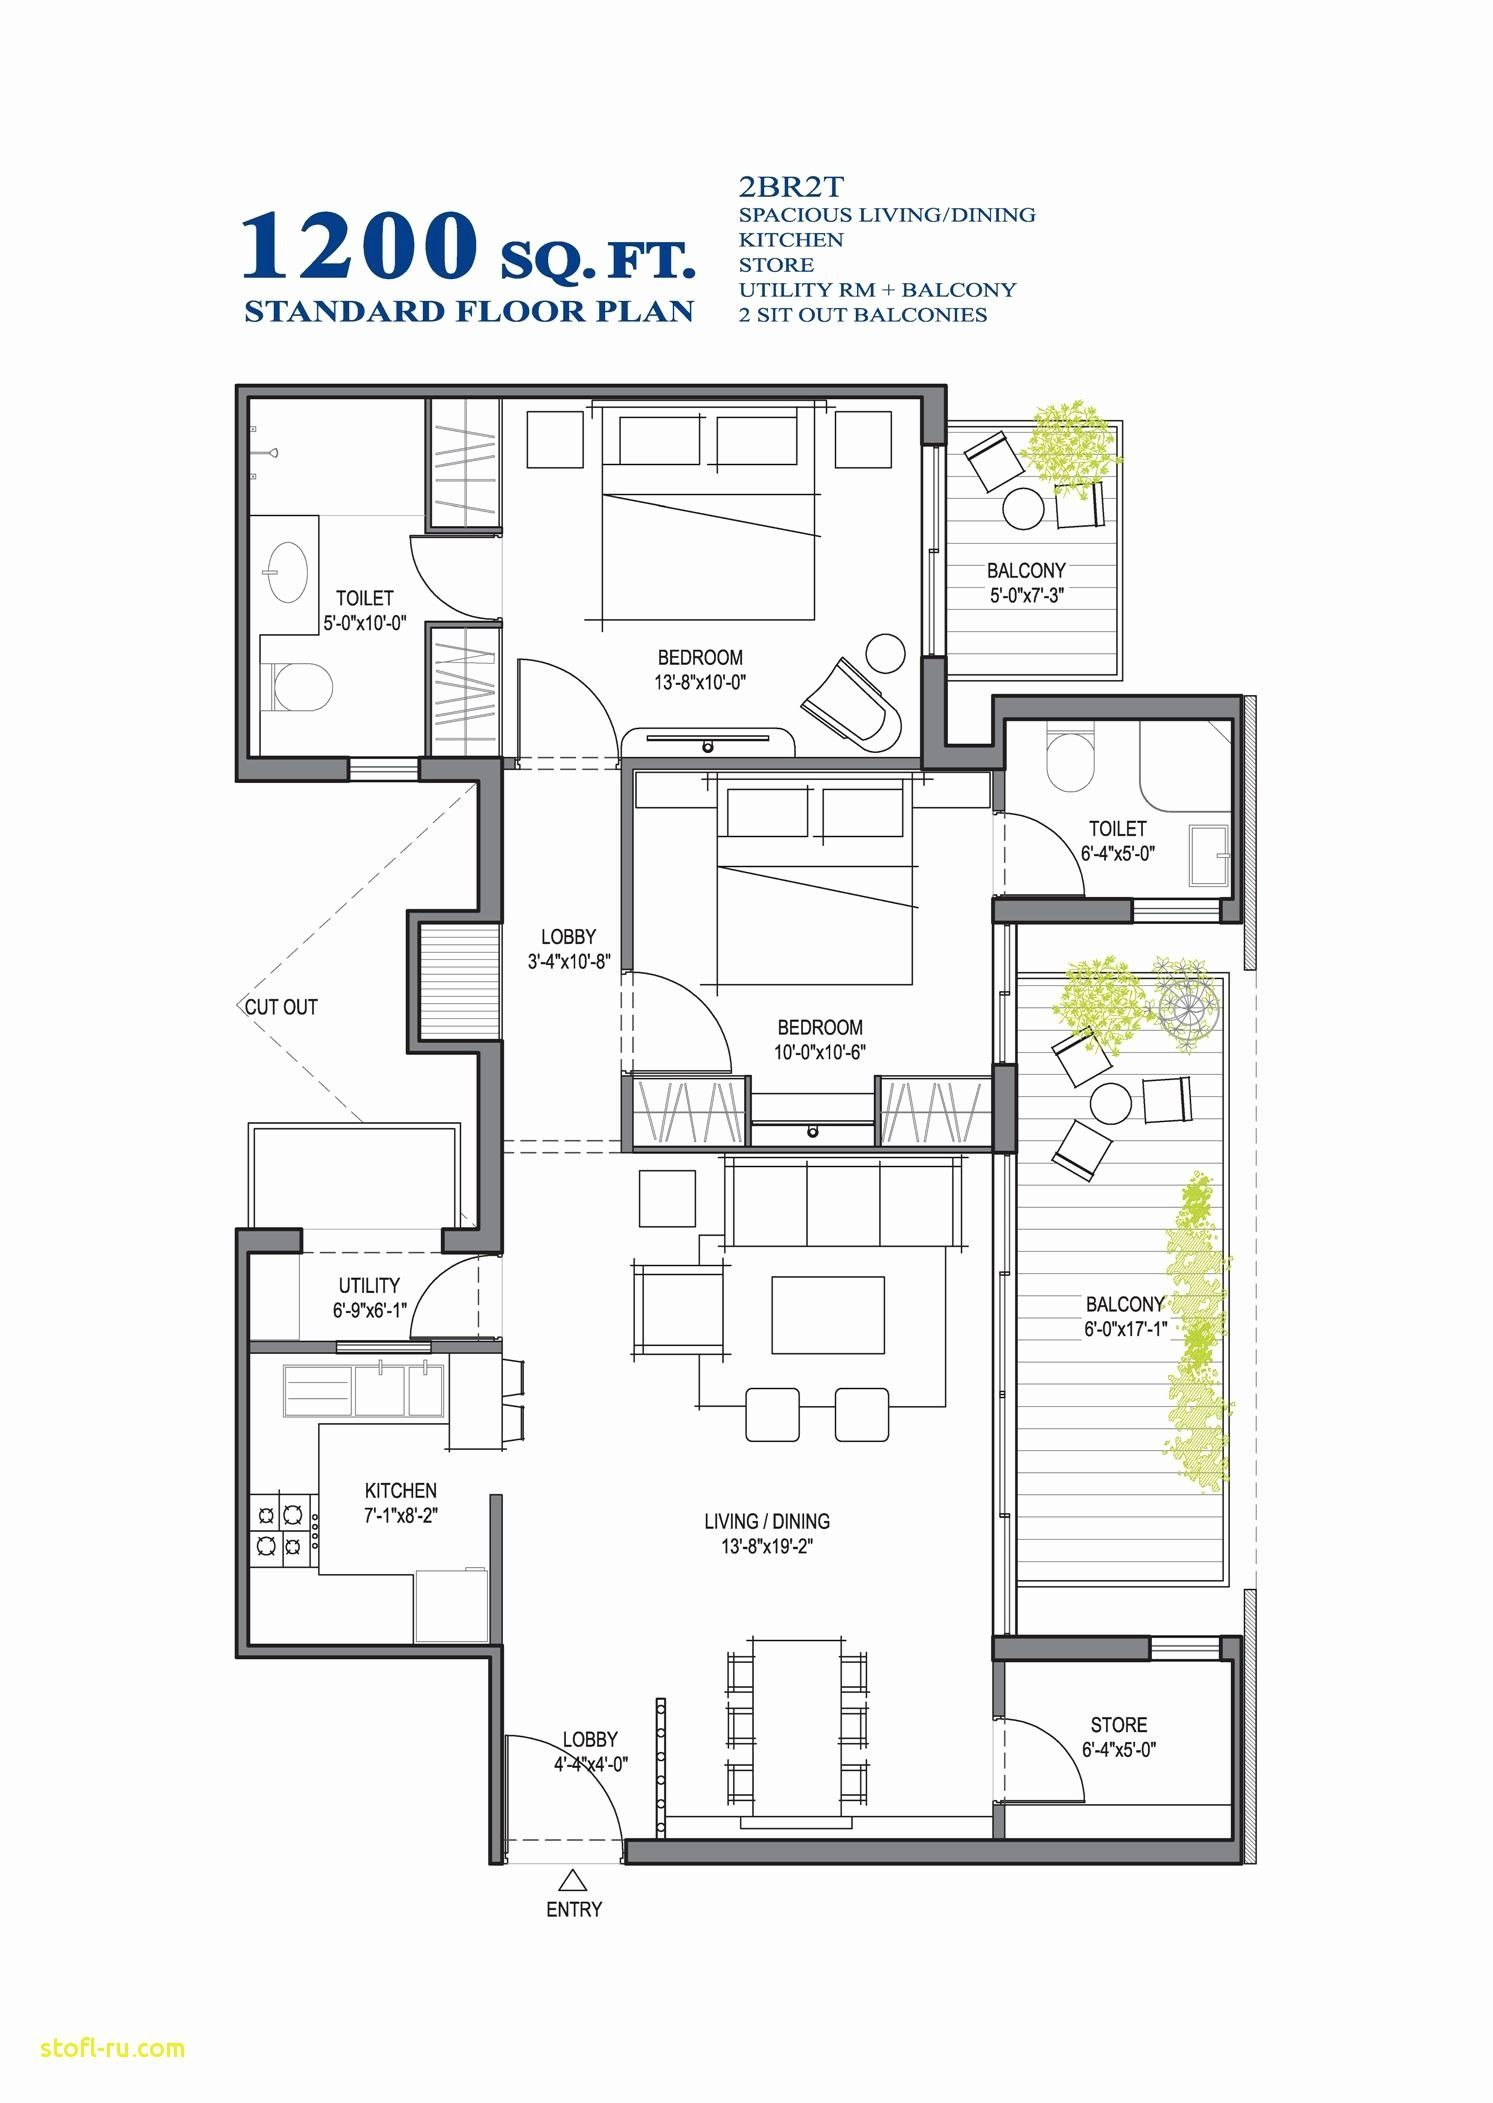 Modern Small House Plans Under 1500 Sq Ft #smallhouseplans ... on 800 sq ft 2 bedroom house plans, 1700 sq ft 2 bedroom house plans, 700 sq ft 2 bedroom house plans, 1000 sq ft 2 bedroom house plans, 1300 sq ft 2 bedroom house plans, 1200 sq ft 2 bedroom house plans, 550 sq ft 2 bedroom house plans, 1600 sq ft 2 bedroom house plans, 900 sq ft 2 bedroom house plans, 600 sq ft 2 bedroom house plans,